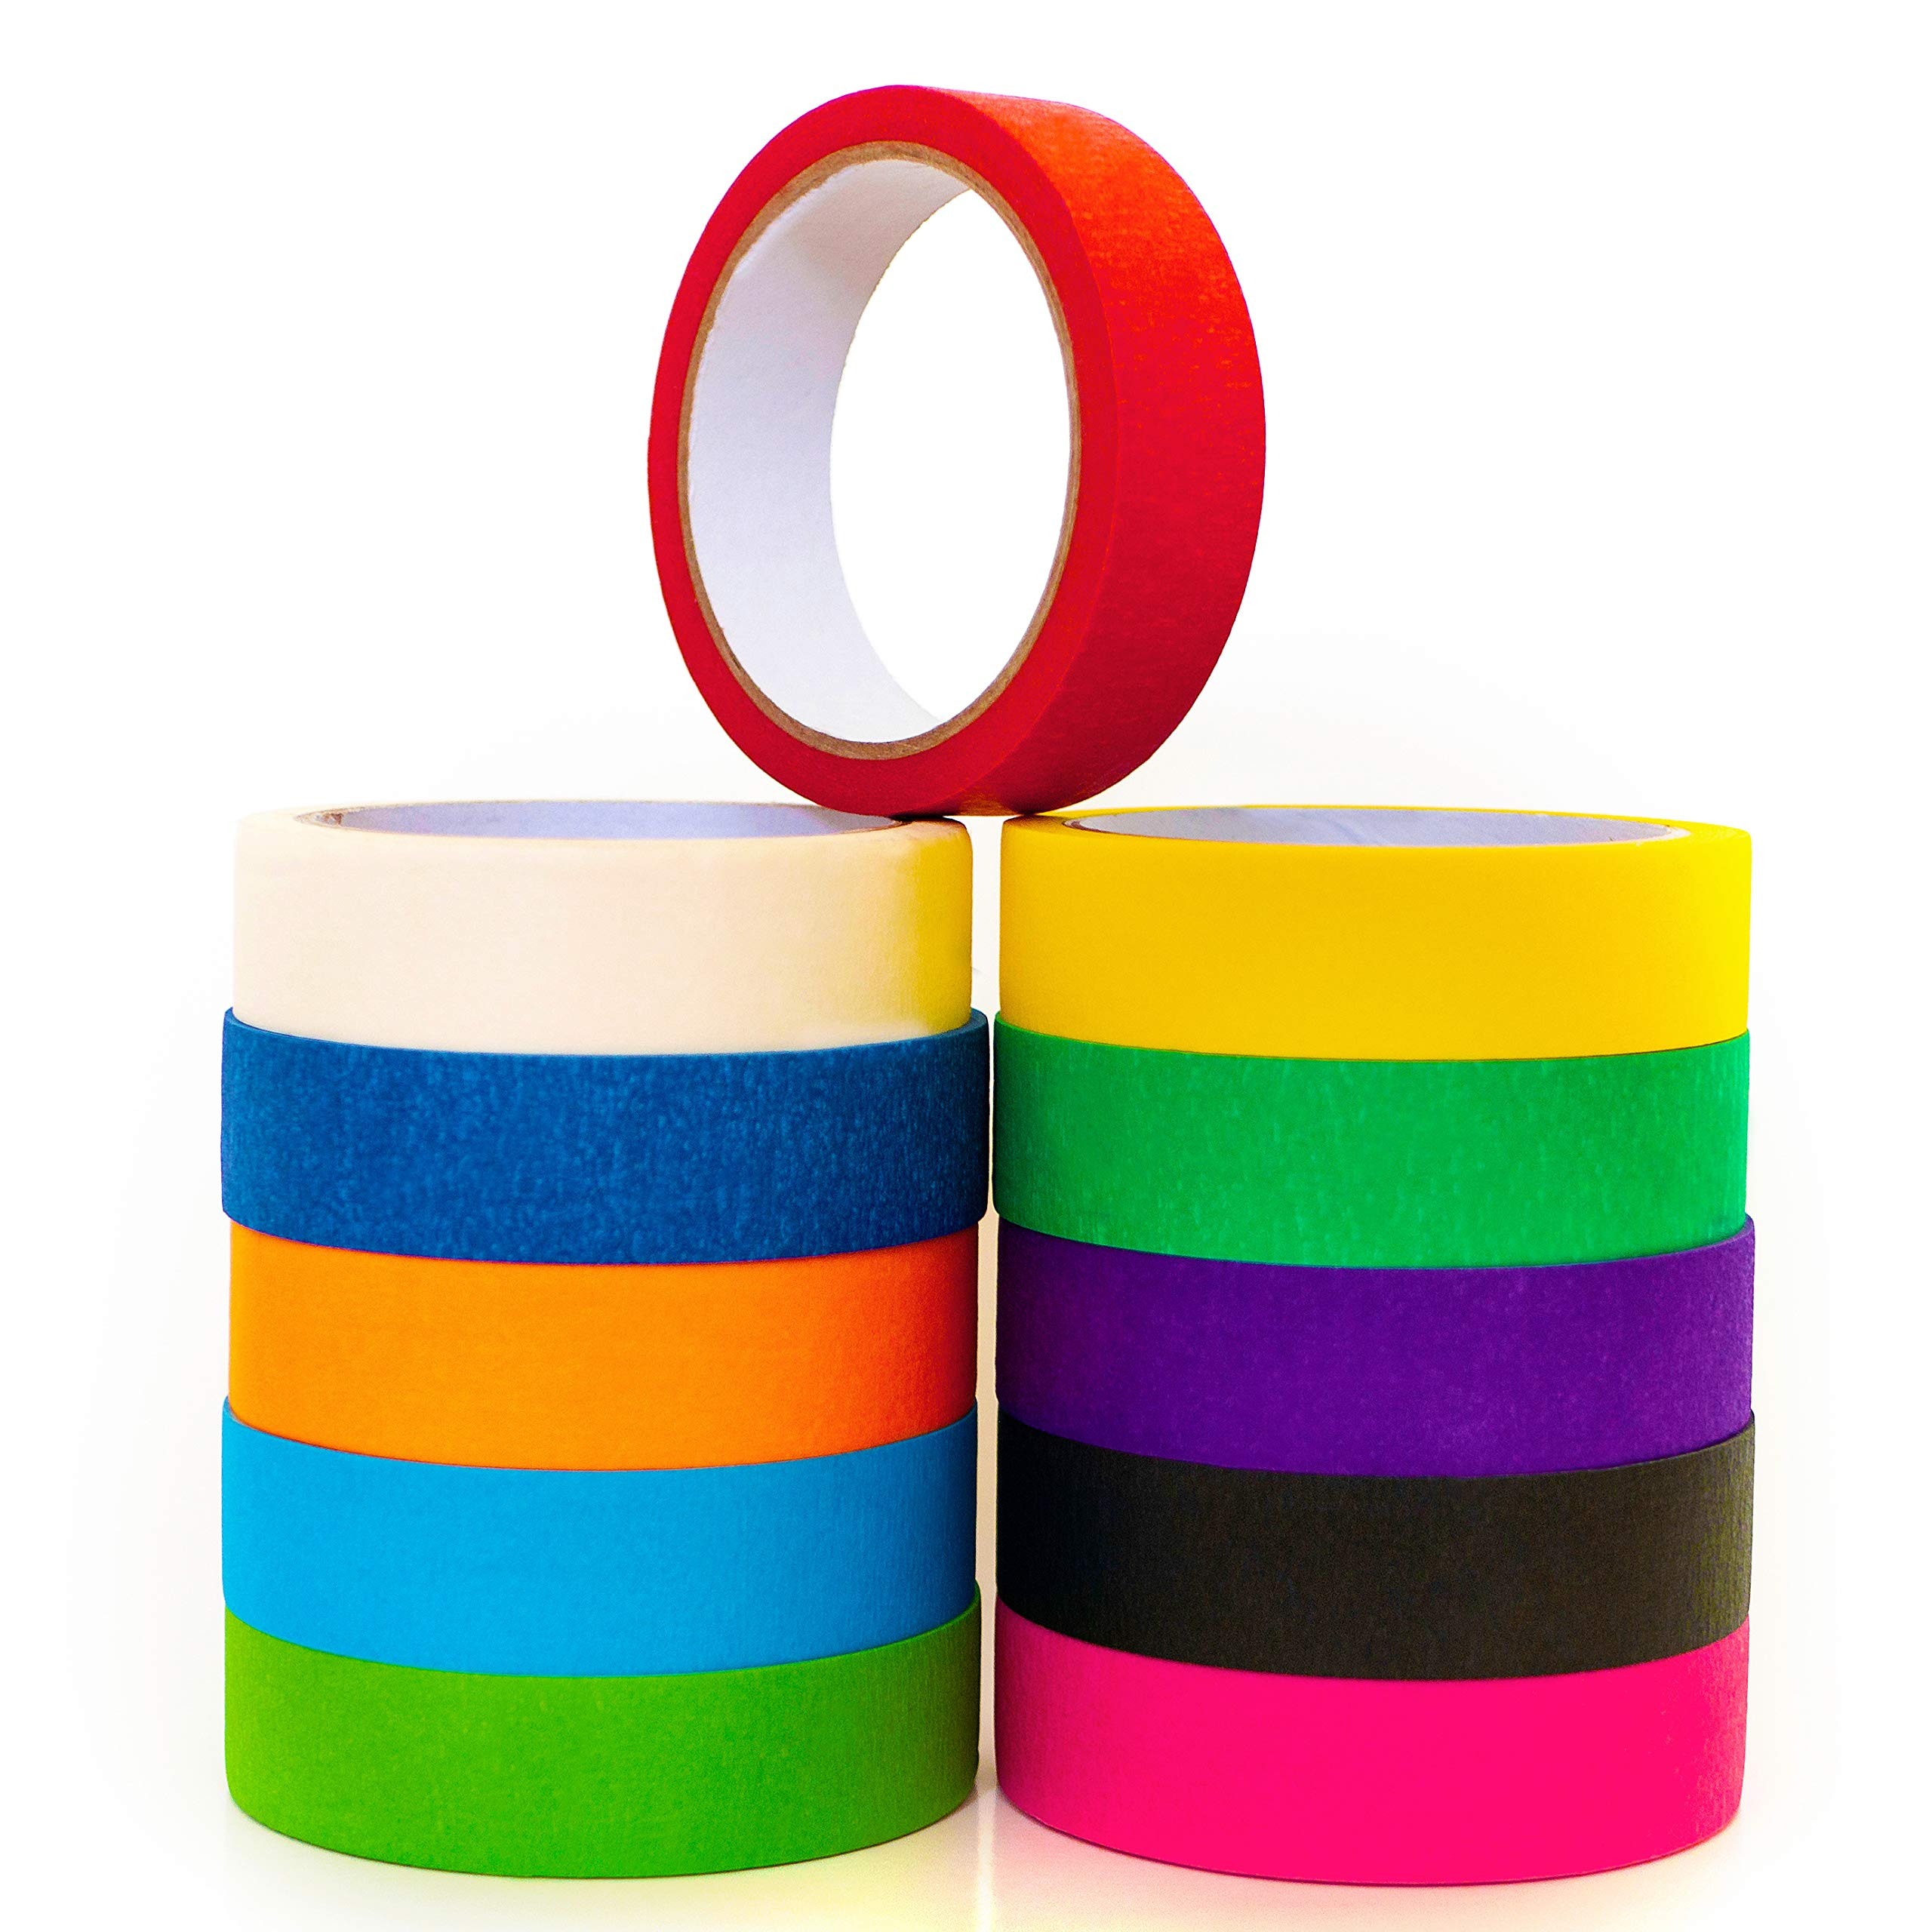 Duffco Colored Masking Tape (11 Pack - Assorted Color Rolls) #1 Colored Tape for Arts and Crafts, DIY Decor, Kids Projects, School Supplies